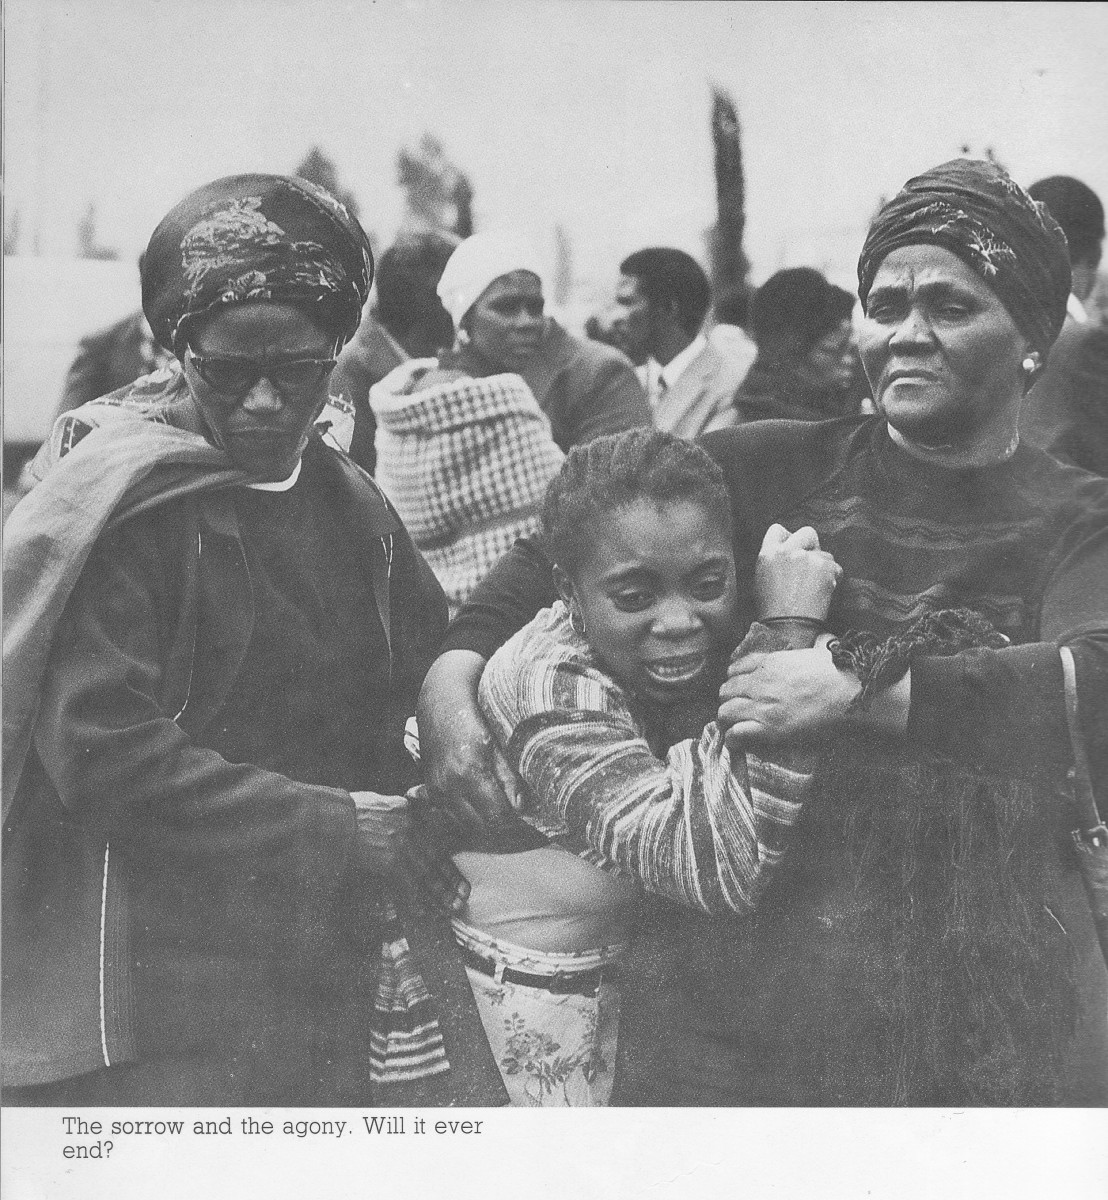 A woman crying from having lost a loved one. Africans spend most of their time, from the days of Apartheid murders and today's AIDS going to the cemetery to bury their dead, and crying most of the time.